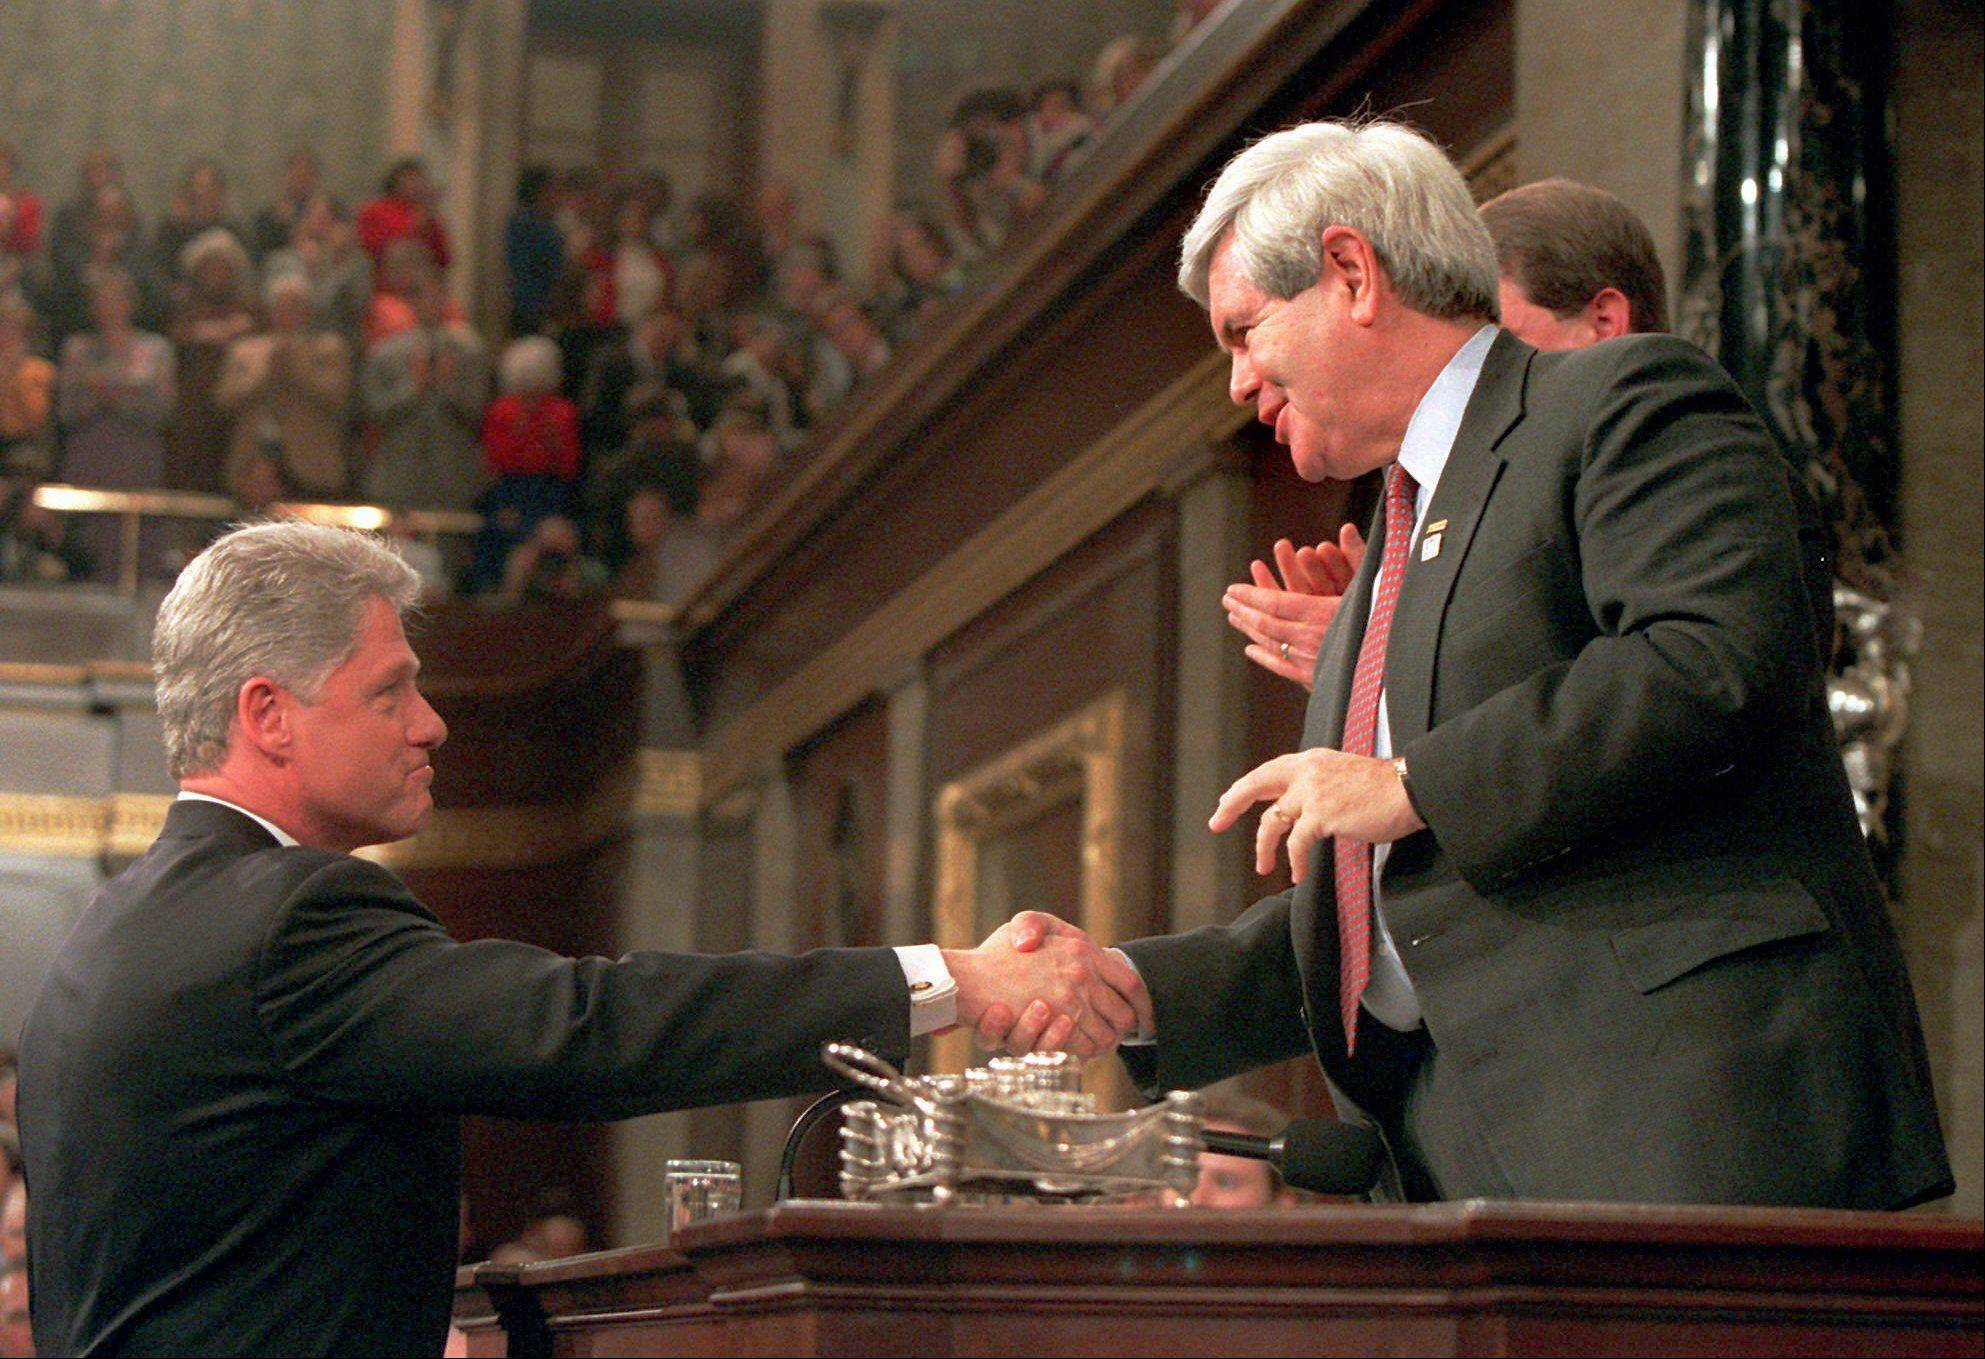 Images: Newt Gingrich and Dennis Hastert